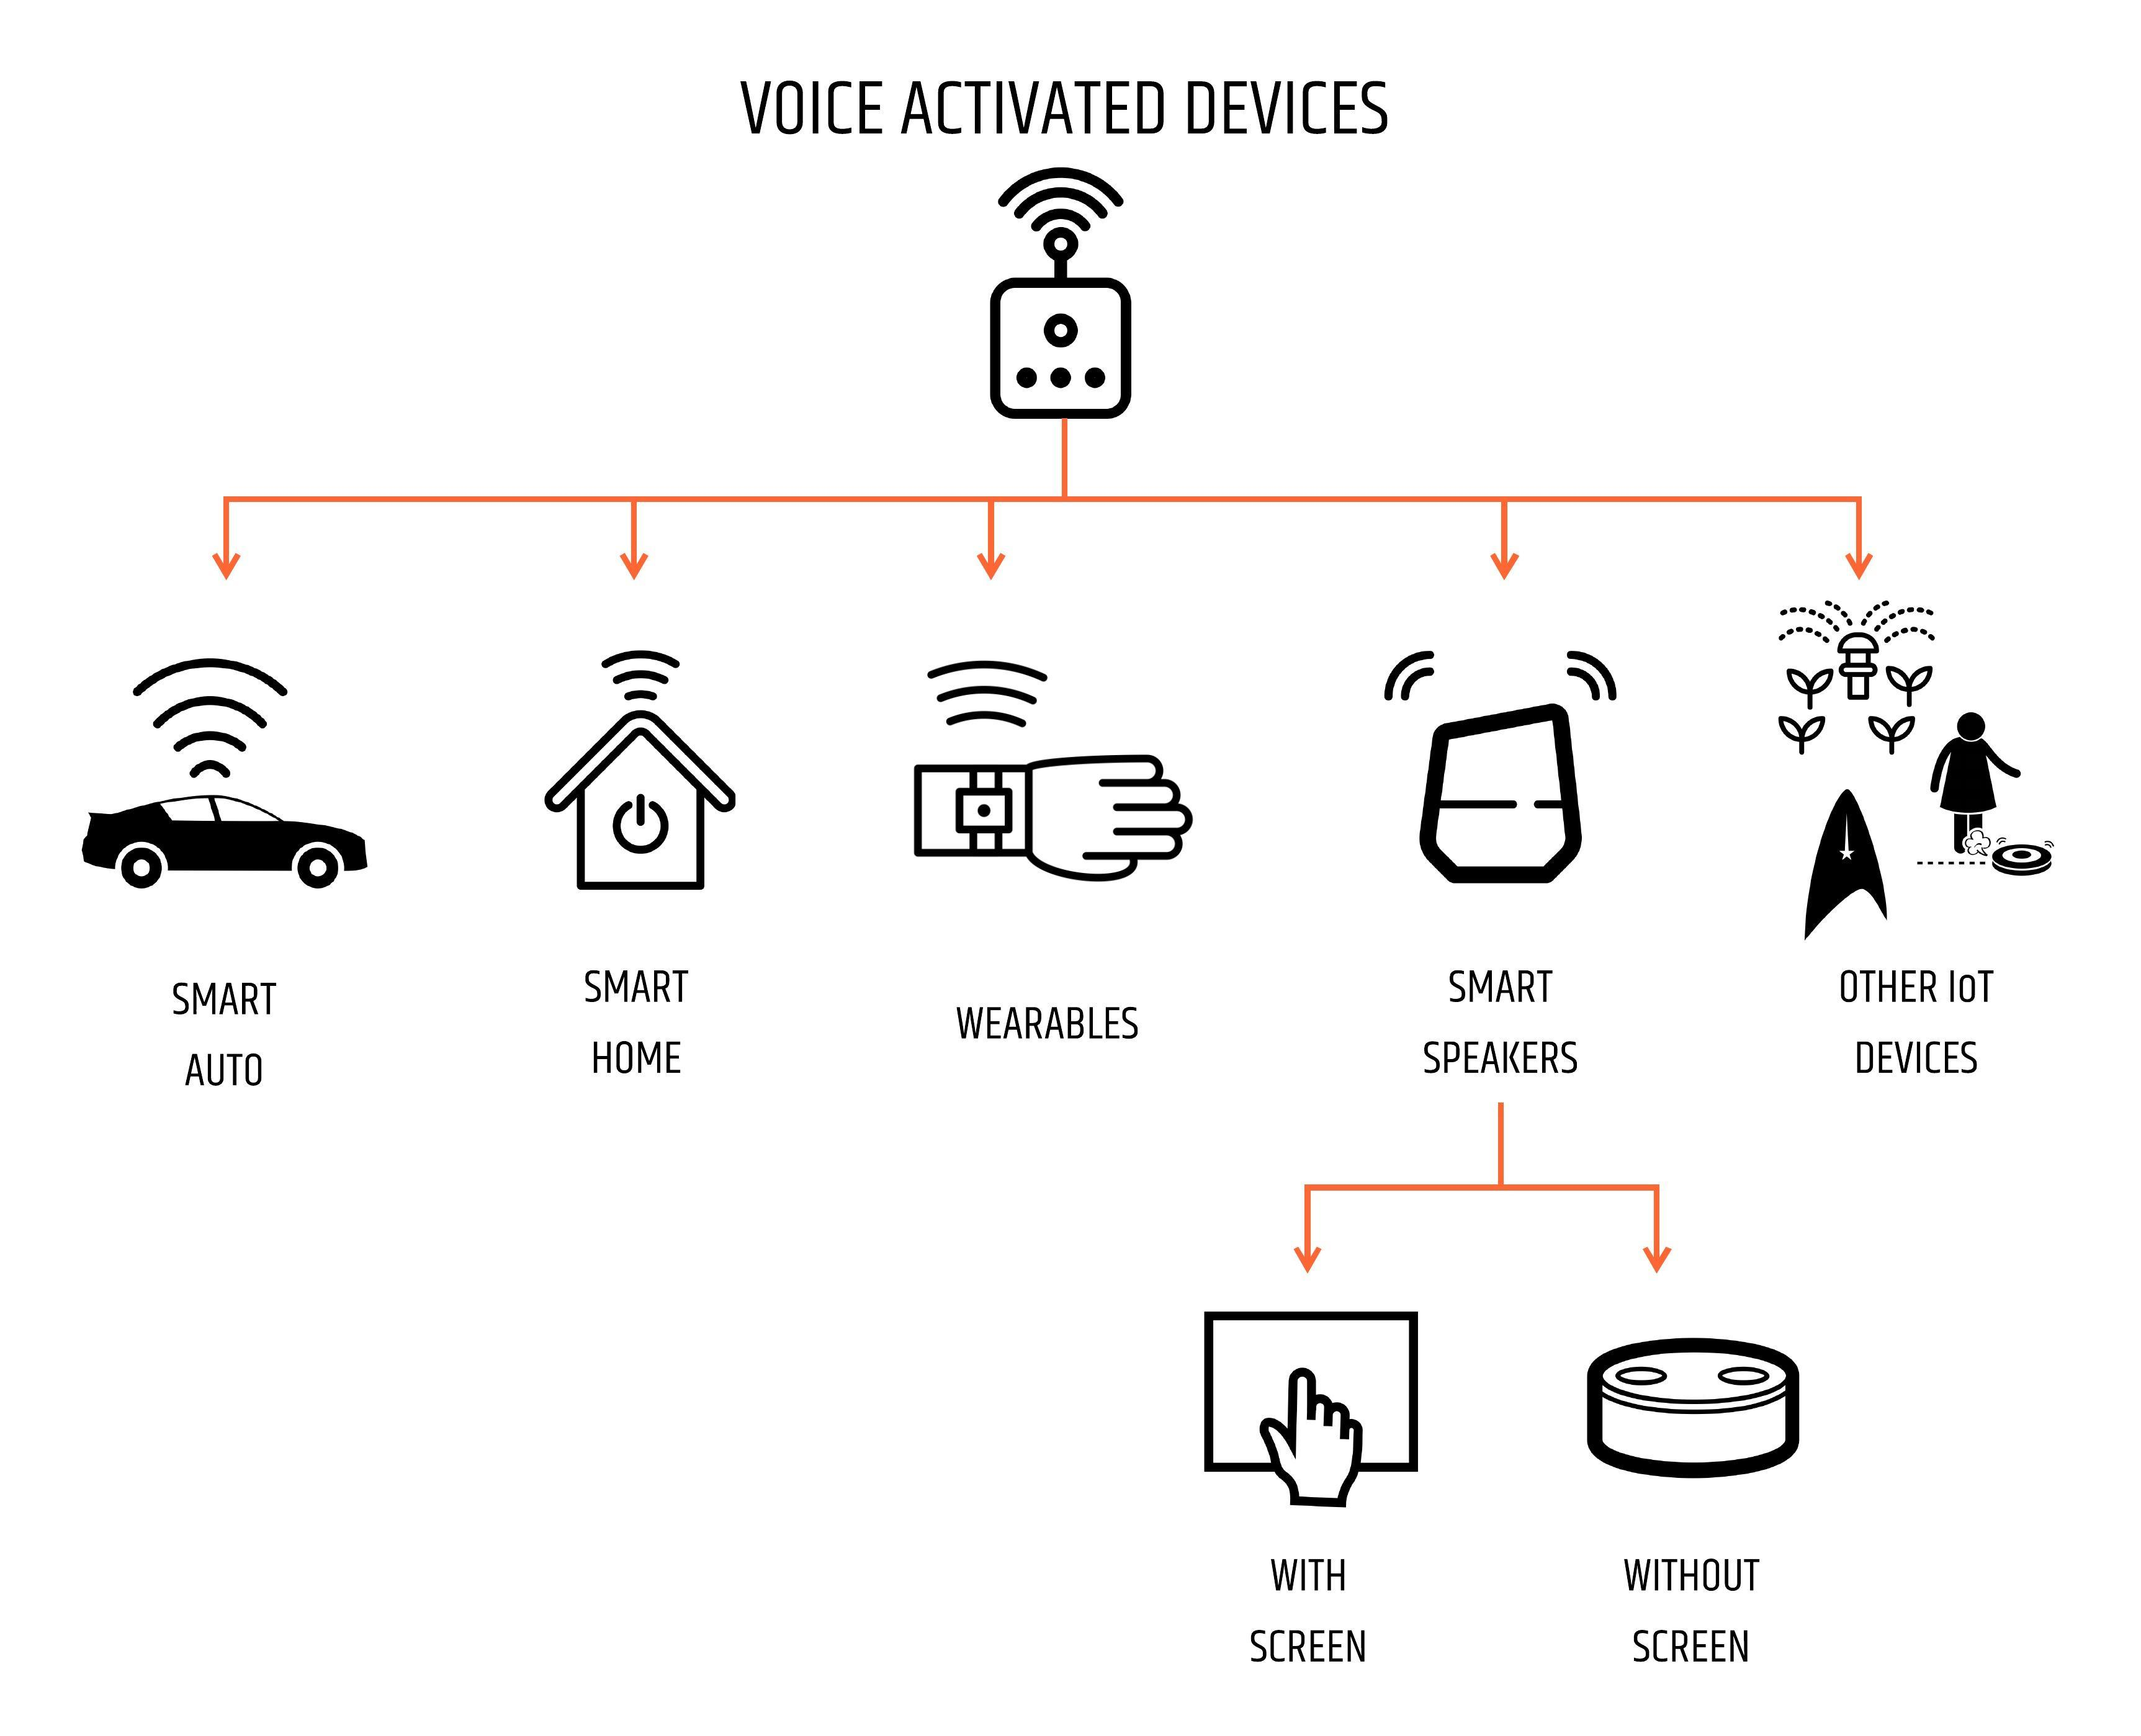 Diagram showing different types of devices activated by voice